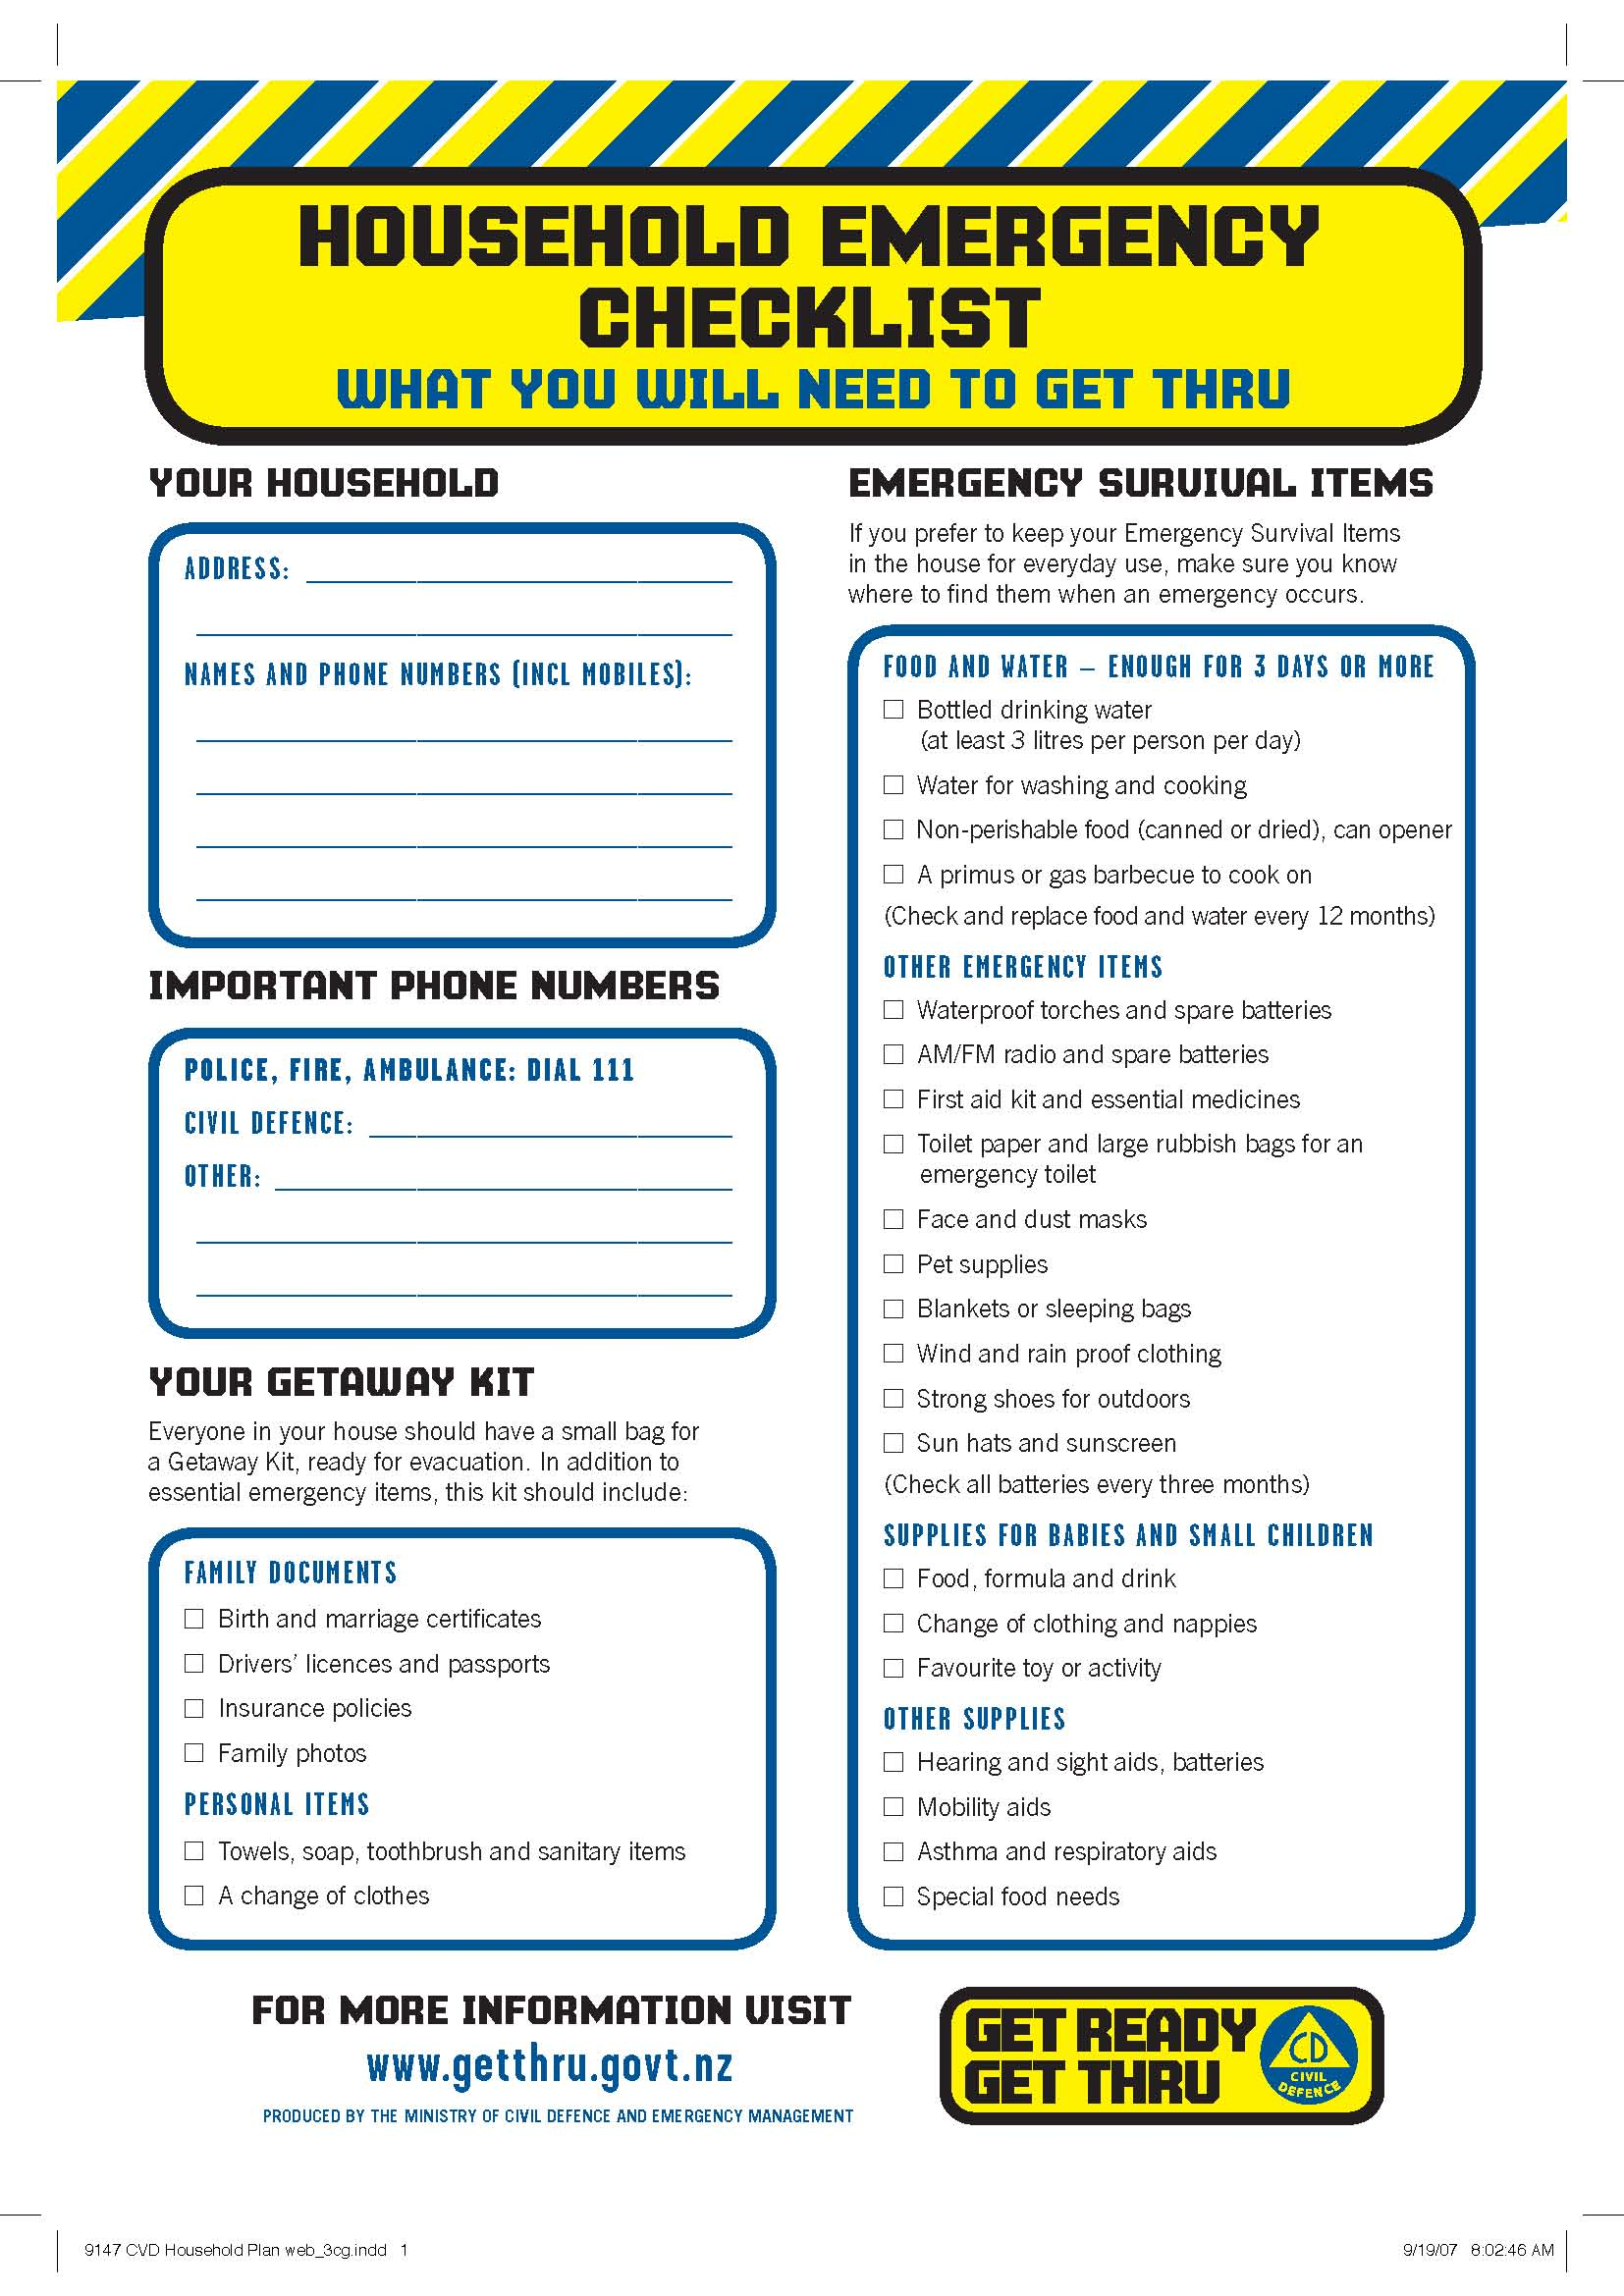 Household Emergency Plan Get Ready Get Thru Would You Be Prepared If A Disaster Happened – Part I